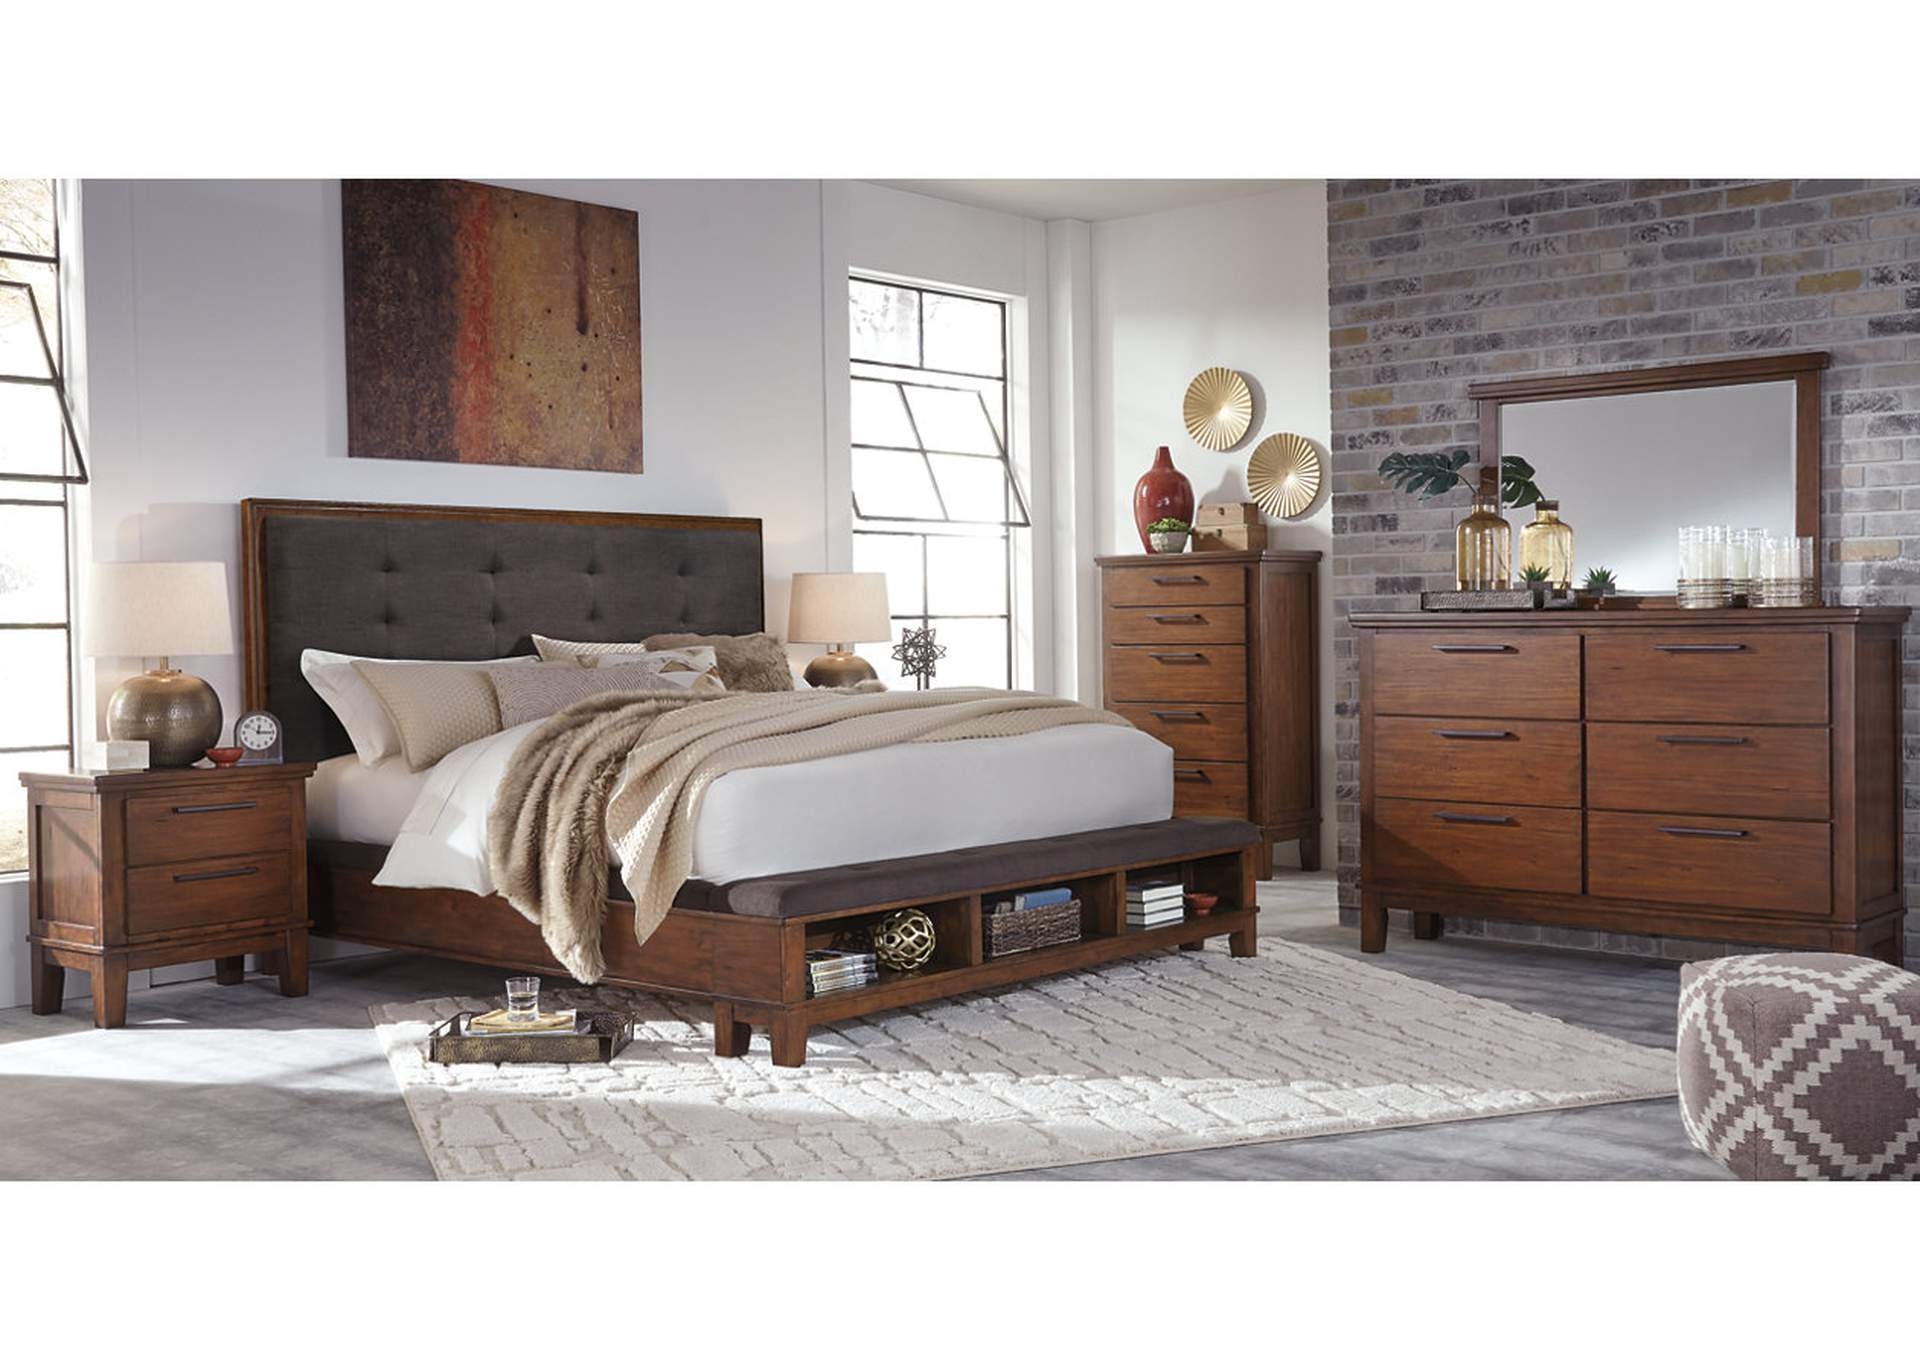 Ralene Medium Brown California King Upholstered Storage Bed w/Dresser & Mirror,Signature Design By Ashley